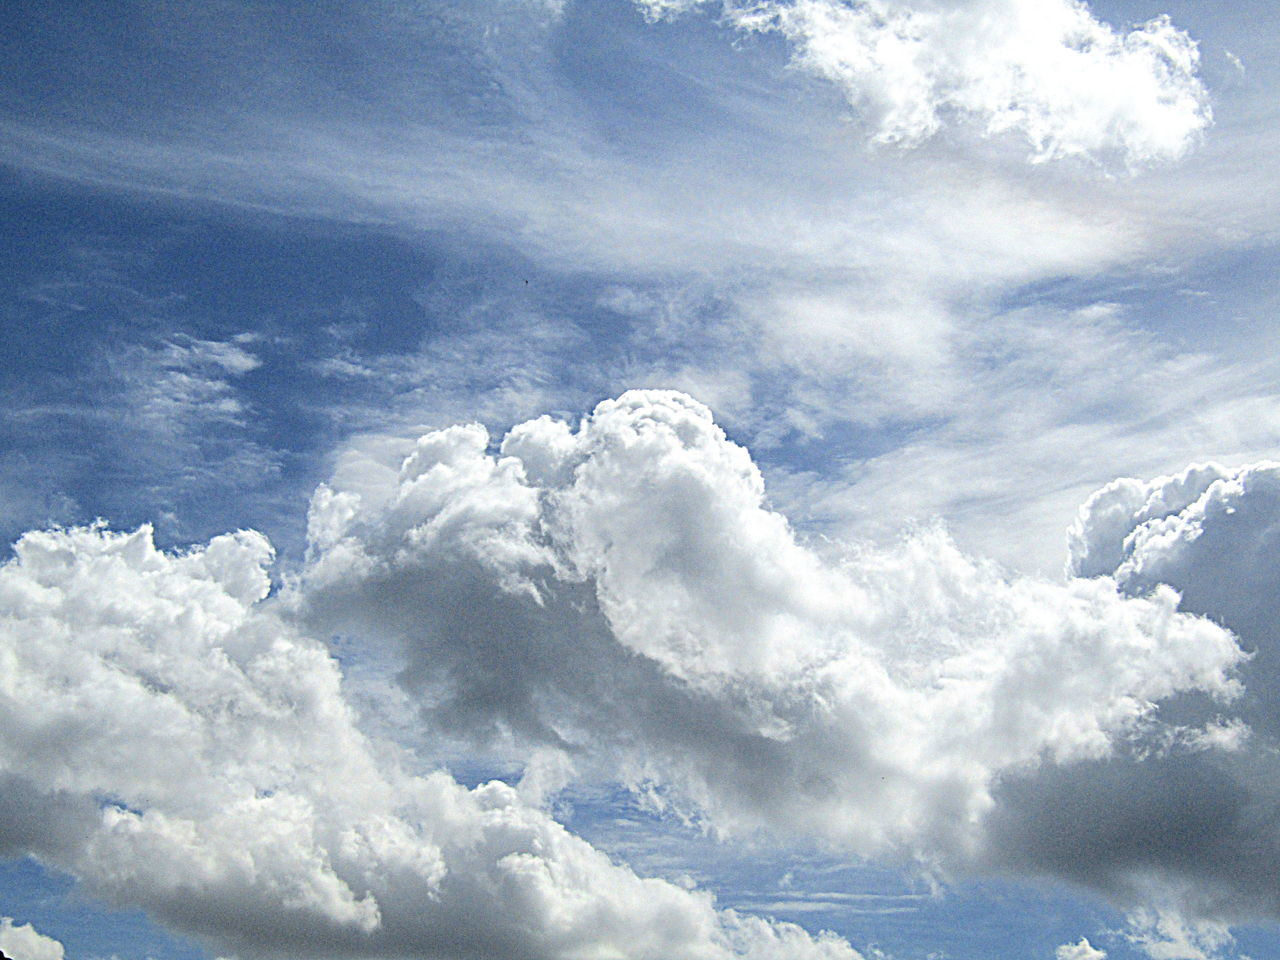 cloud - sky, nature, sky, beauty in nature, no people, white color, tranquility, sky only, scenics, day, low angle view, outdoors, backgrounds